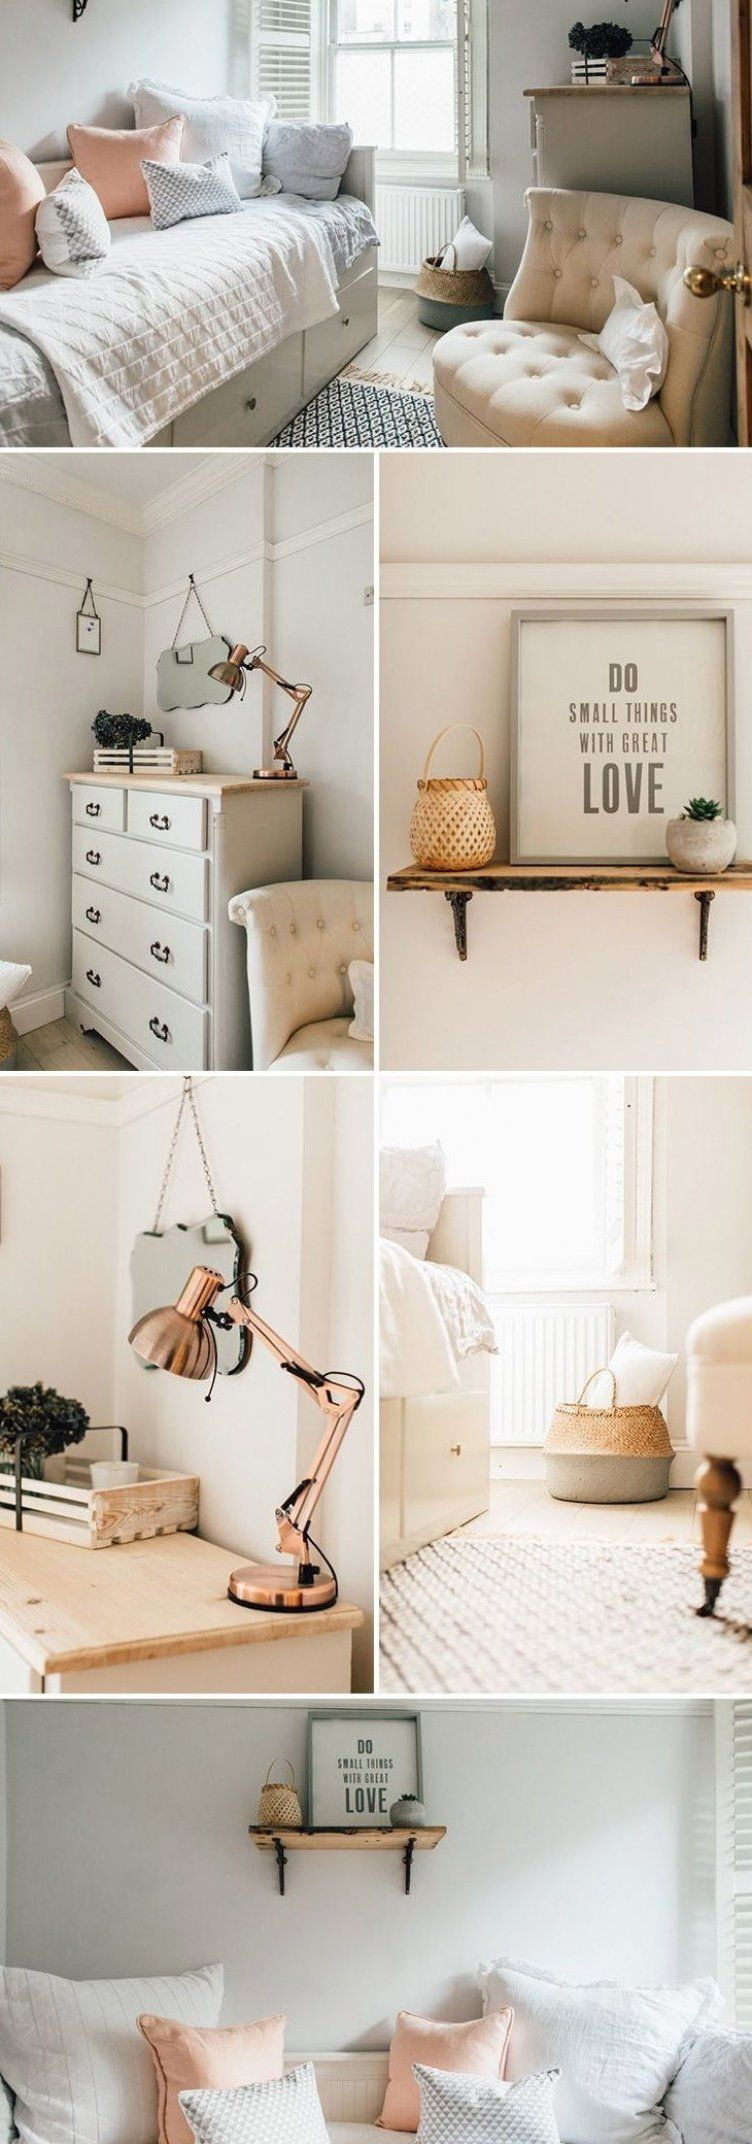 guest room decor ideas on A Light And Airy Guest Bedroom Guest Bedroom Decor Ideas White And Peach Bed Airy Bed Bedroom D Guest Bedroom Decor Guest Room Decor Bedroom Interior